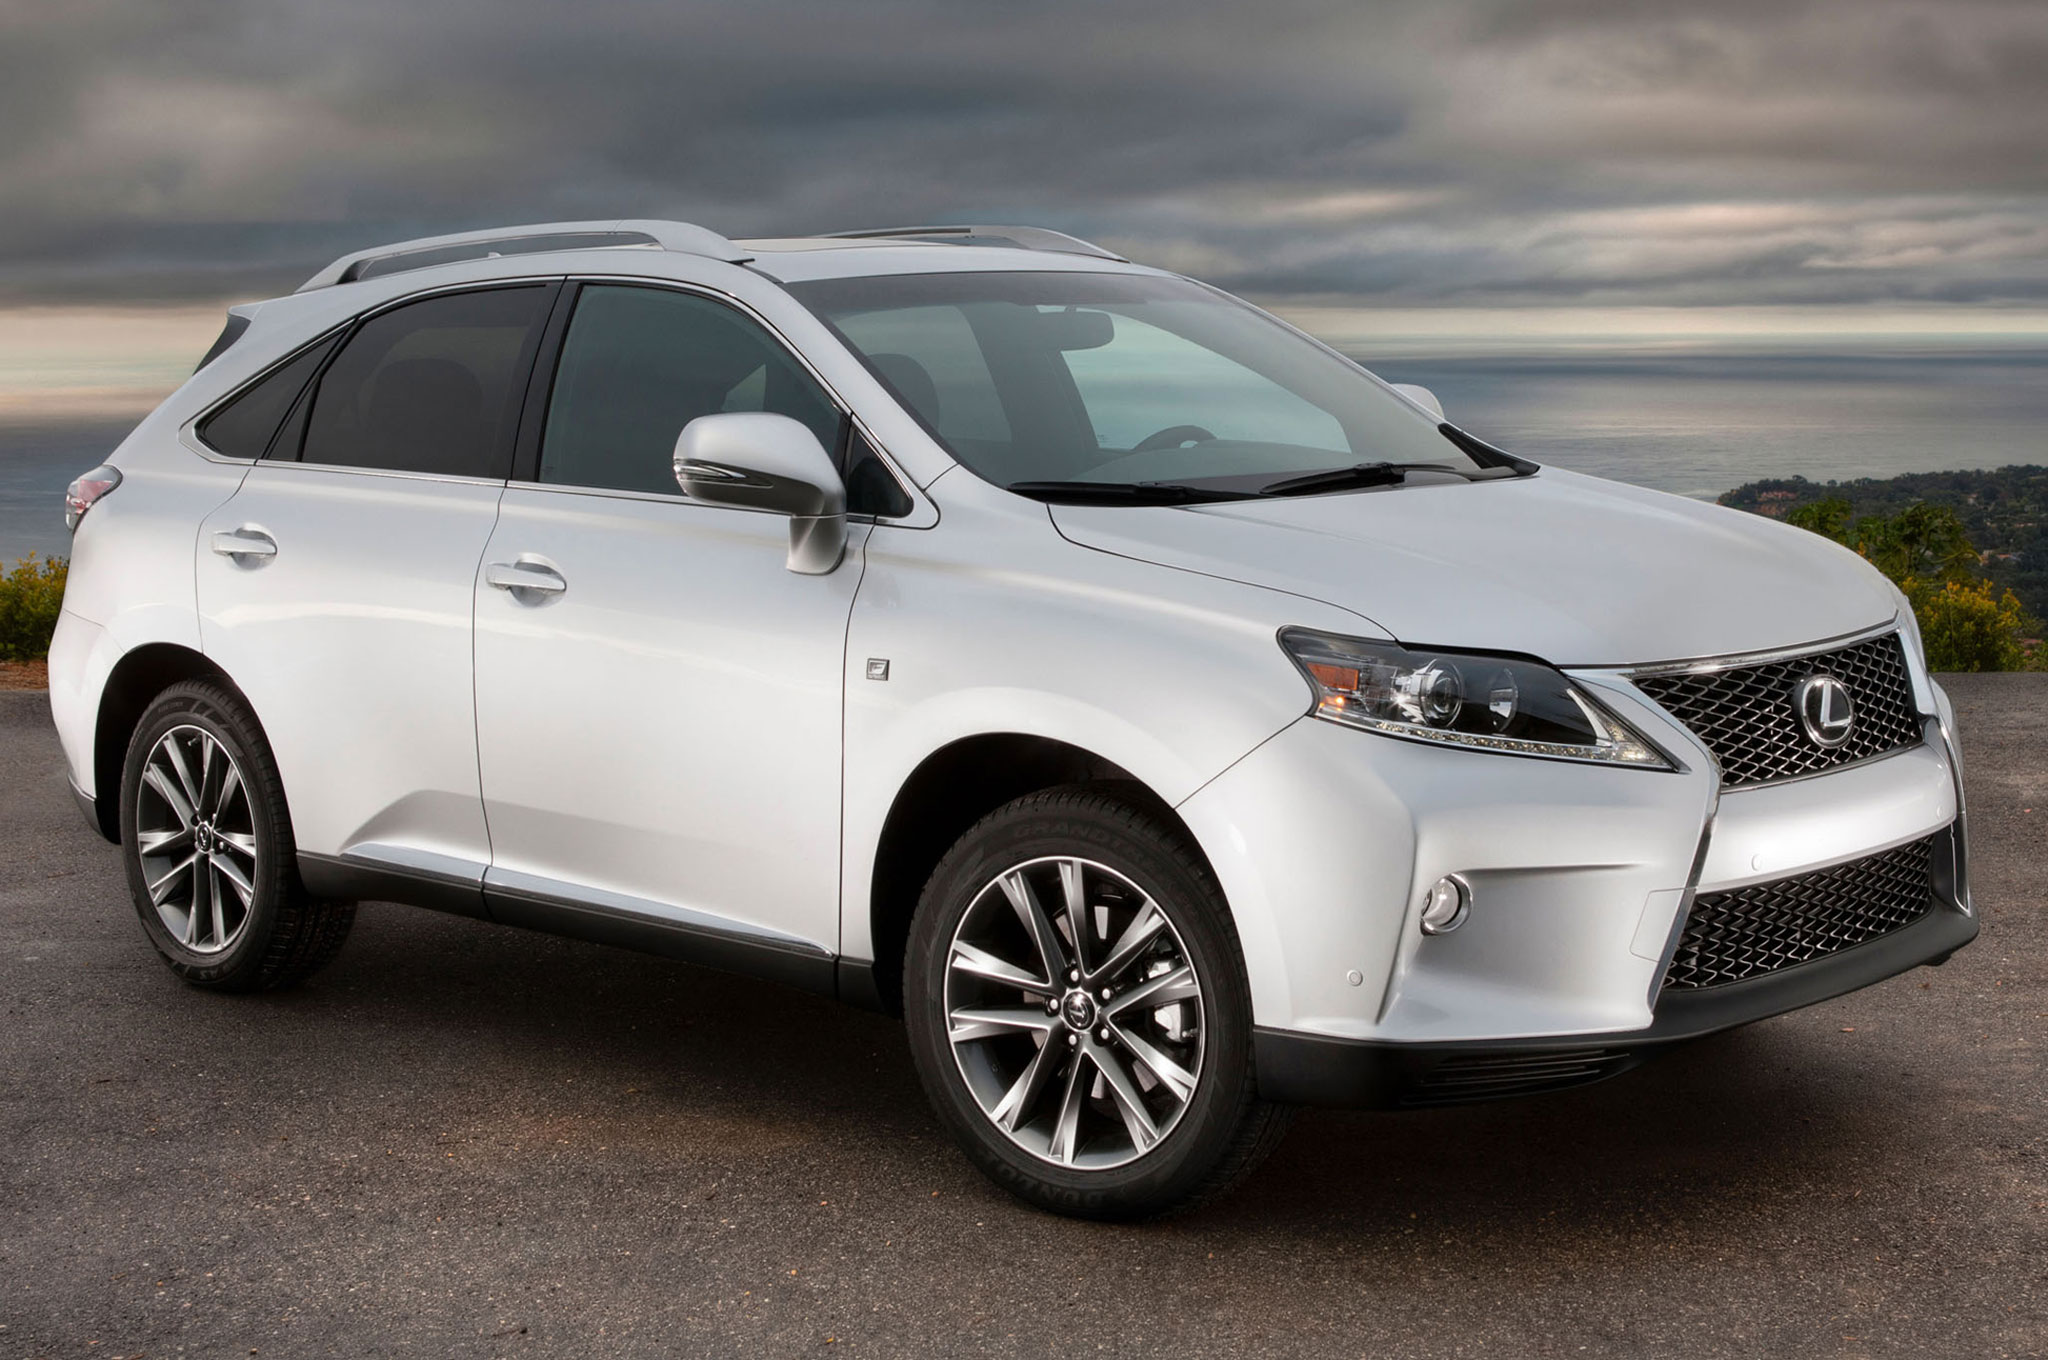 2014 Lexus RX 350 Information and photos ZombieDrive